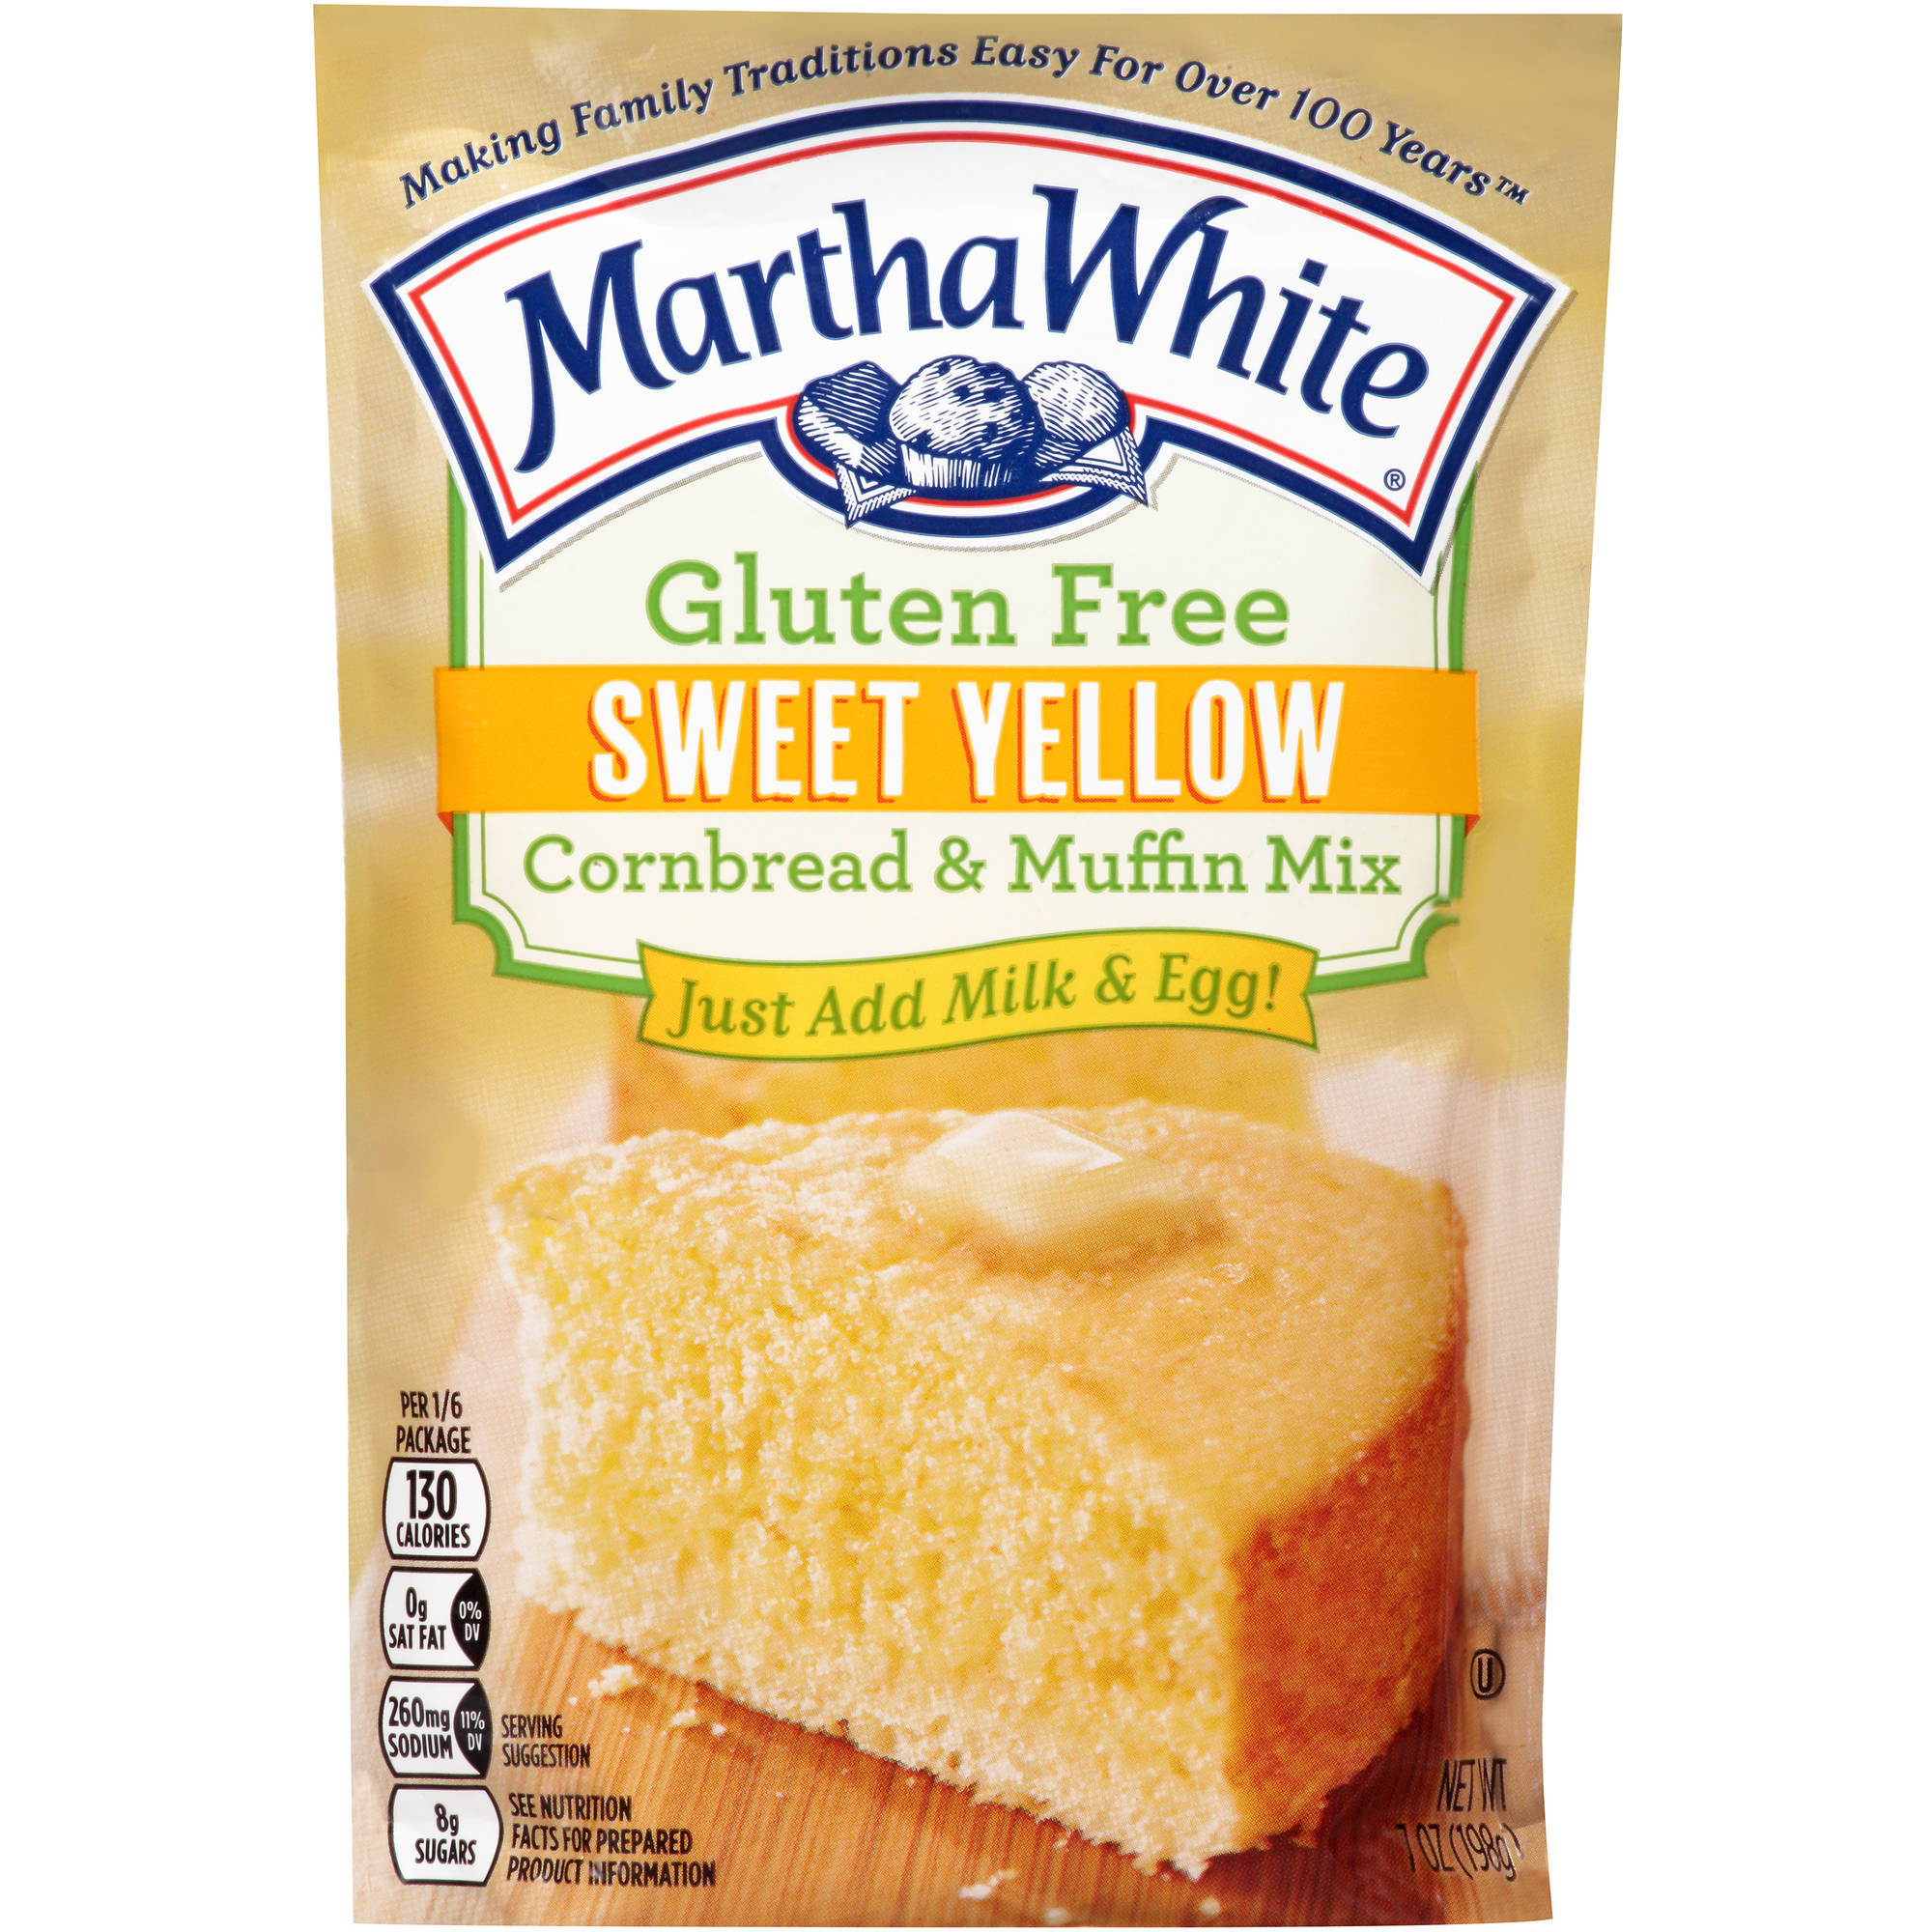 Martha White Gluten Free Sweet Yellow Cornbread & Muffin Mix, 7 Ounces